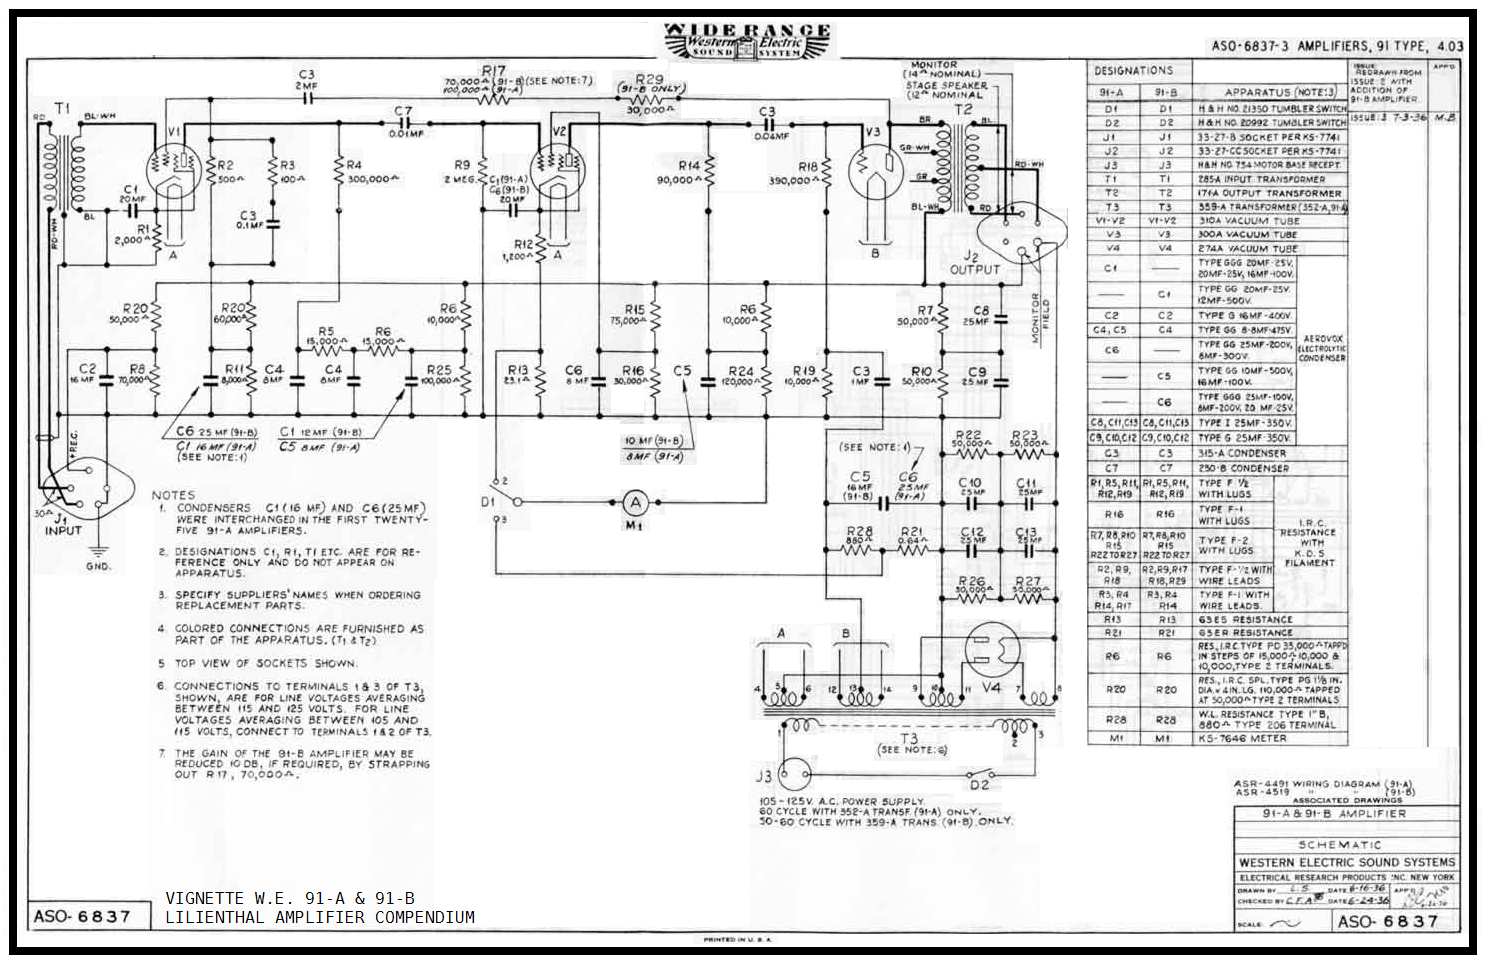 Western Electric Model 750 Wiring Diagram Diagrams 100 Amplifiers Part 1 1916 45 Lilienthal Engineering Rh Lilienthalengineering Com House Basic Electrical